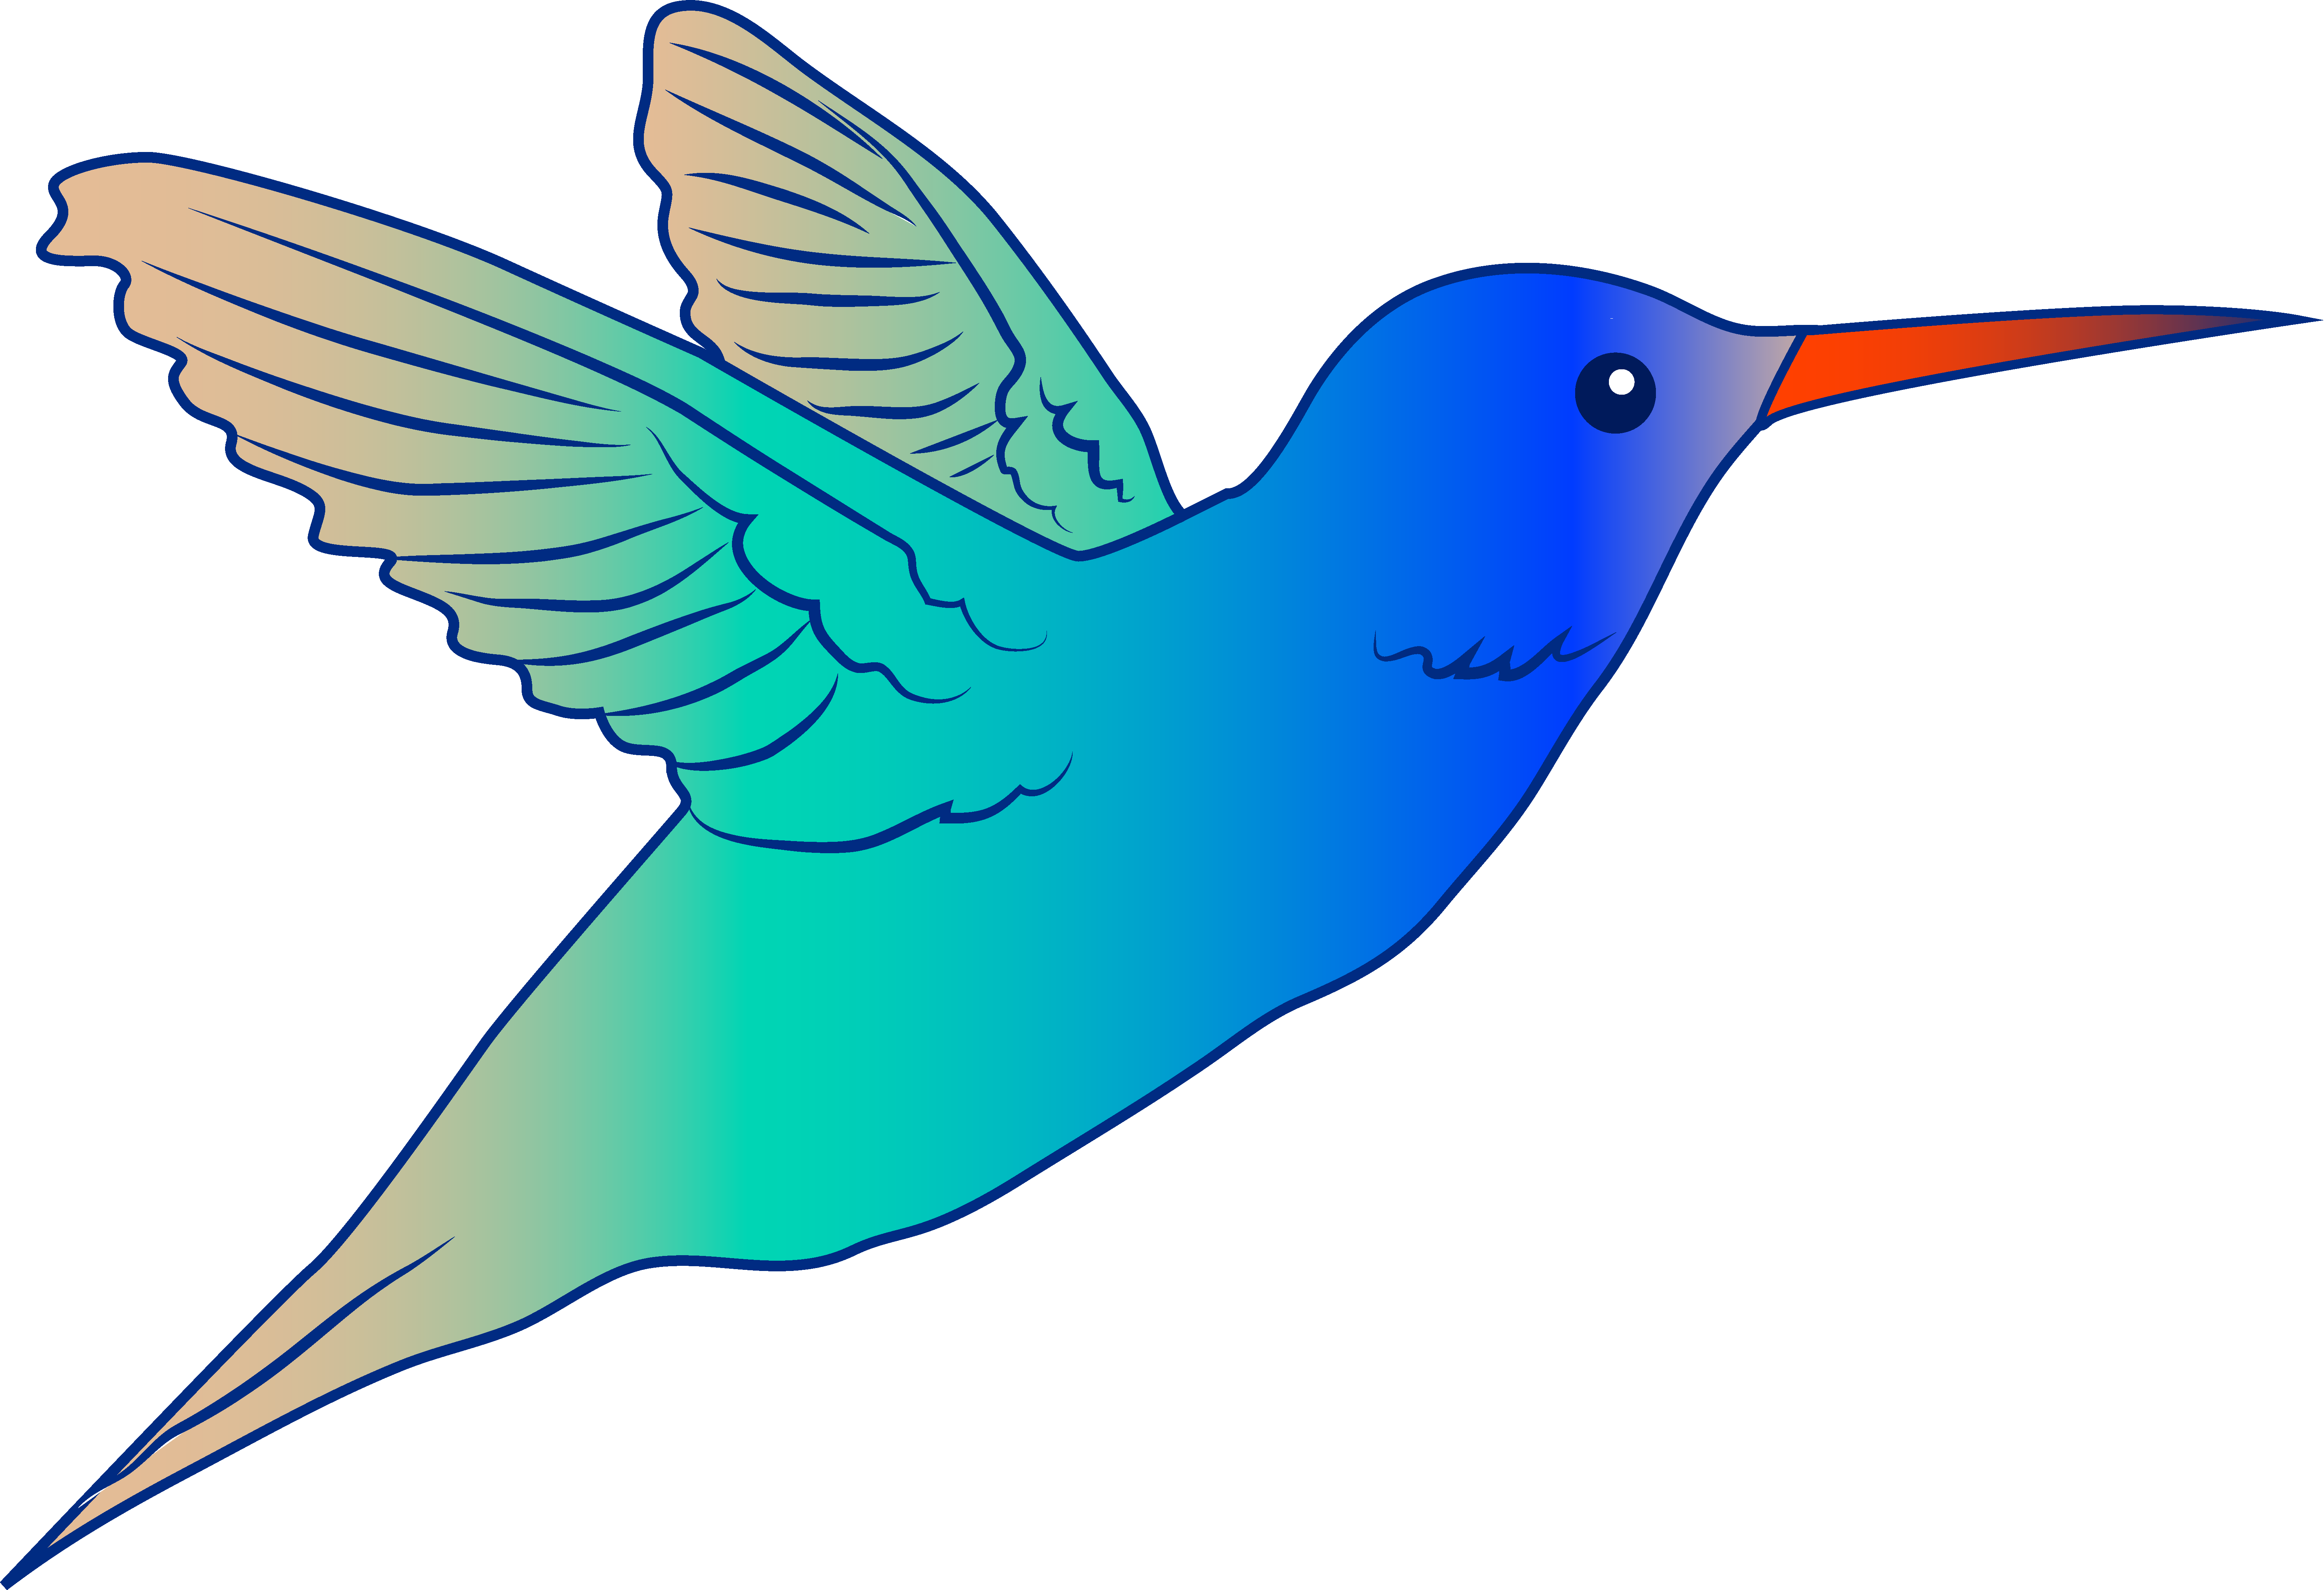 Bird flying clipart no background.